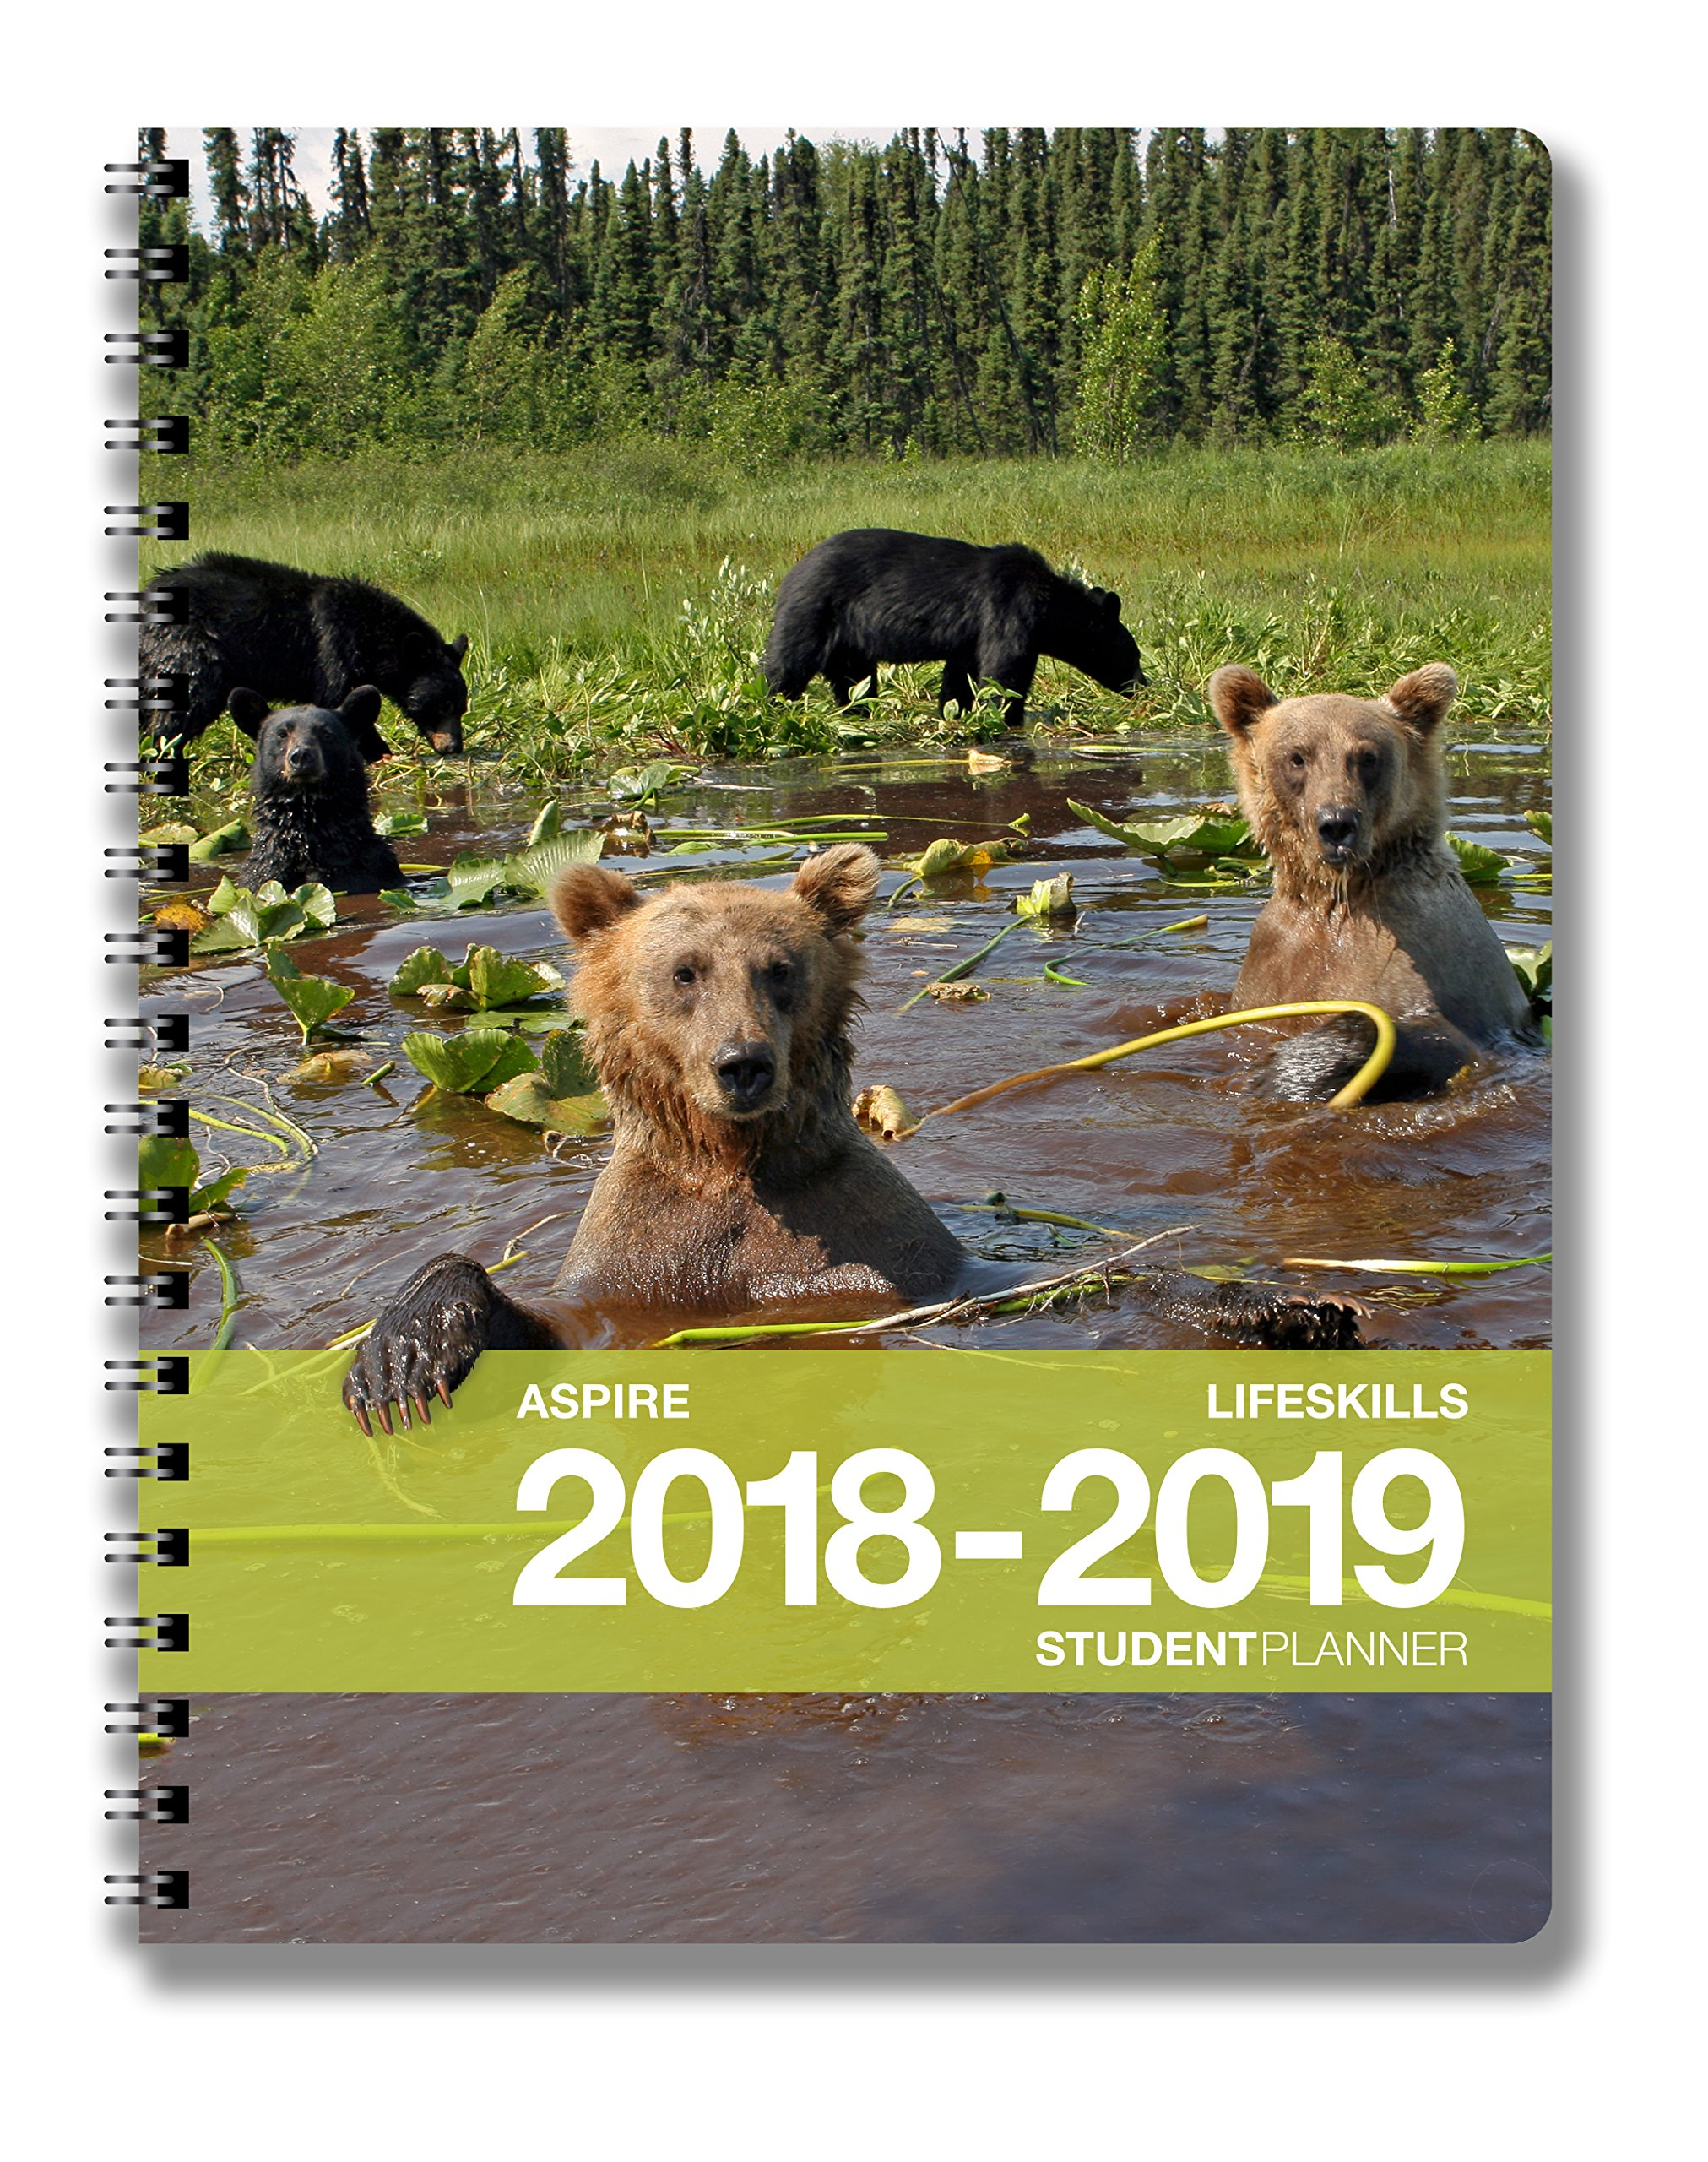 Aspire Student Planner (8.5 x 11 inches) August 2018 - July 2019 Academic Agenda - Inspiring Full Color Organizer For Goal Setting, Time Management, Study Skills & More - [Grades 6th - College]